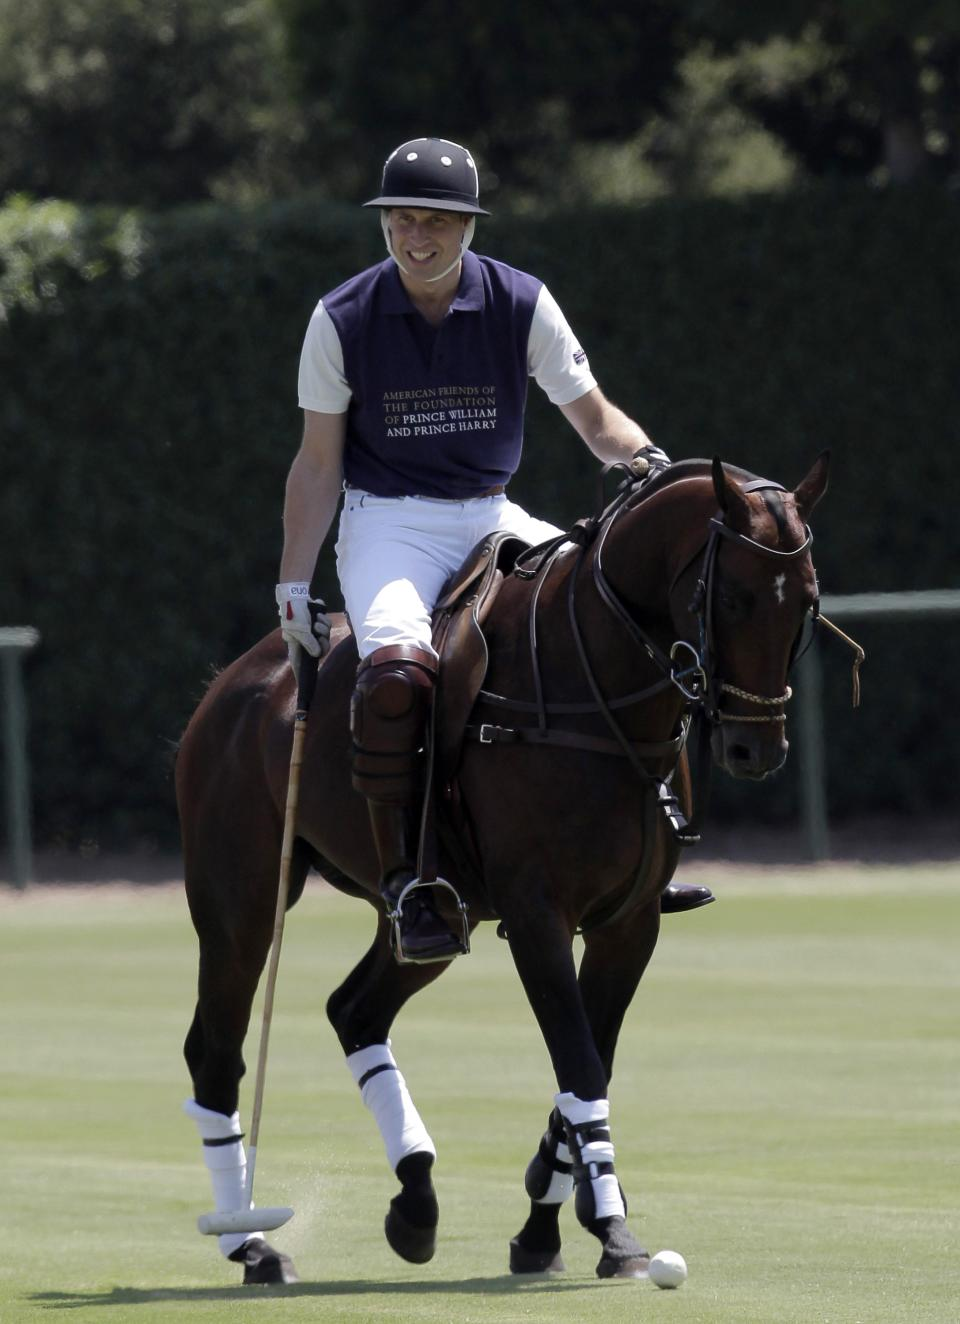 Prince William, Duke of Cambridge warms up prior to the charity polo match at The Santa Barbara Polo & Racquet club on Saturday, July 9, 2011 in Carpinteria Calif.  The event is held in support of The American Friends of The Foundation of Prince William and Prince Harry. (AP Photo/Reed Saxon)